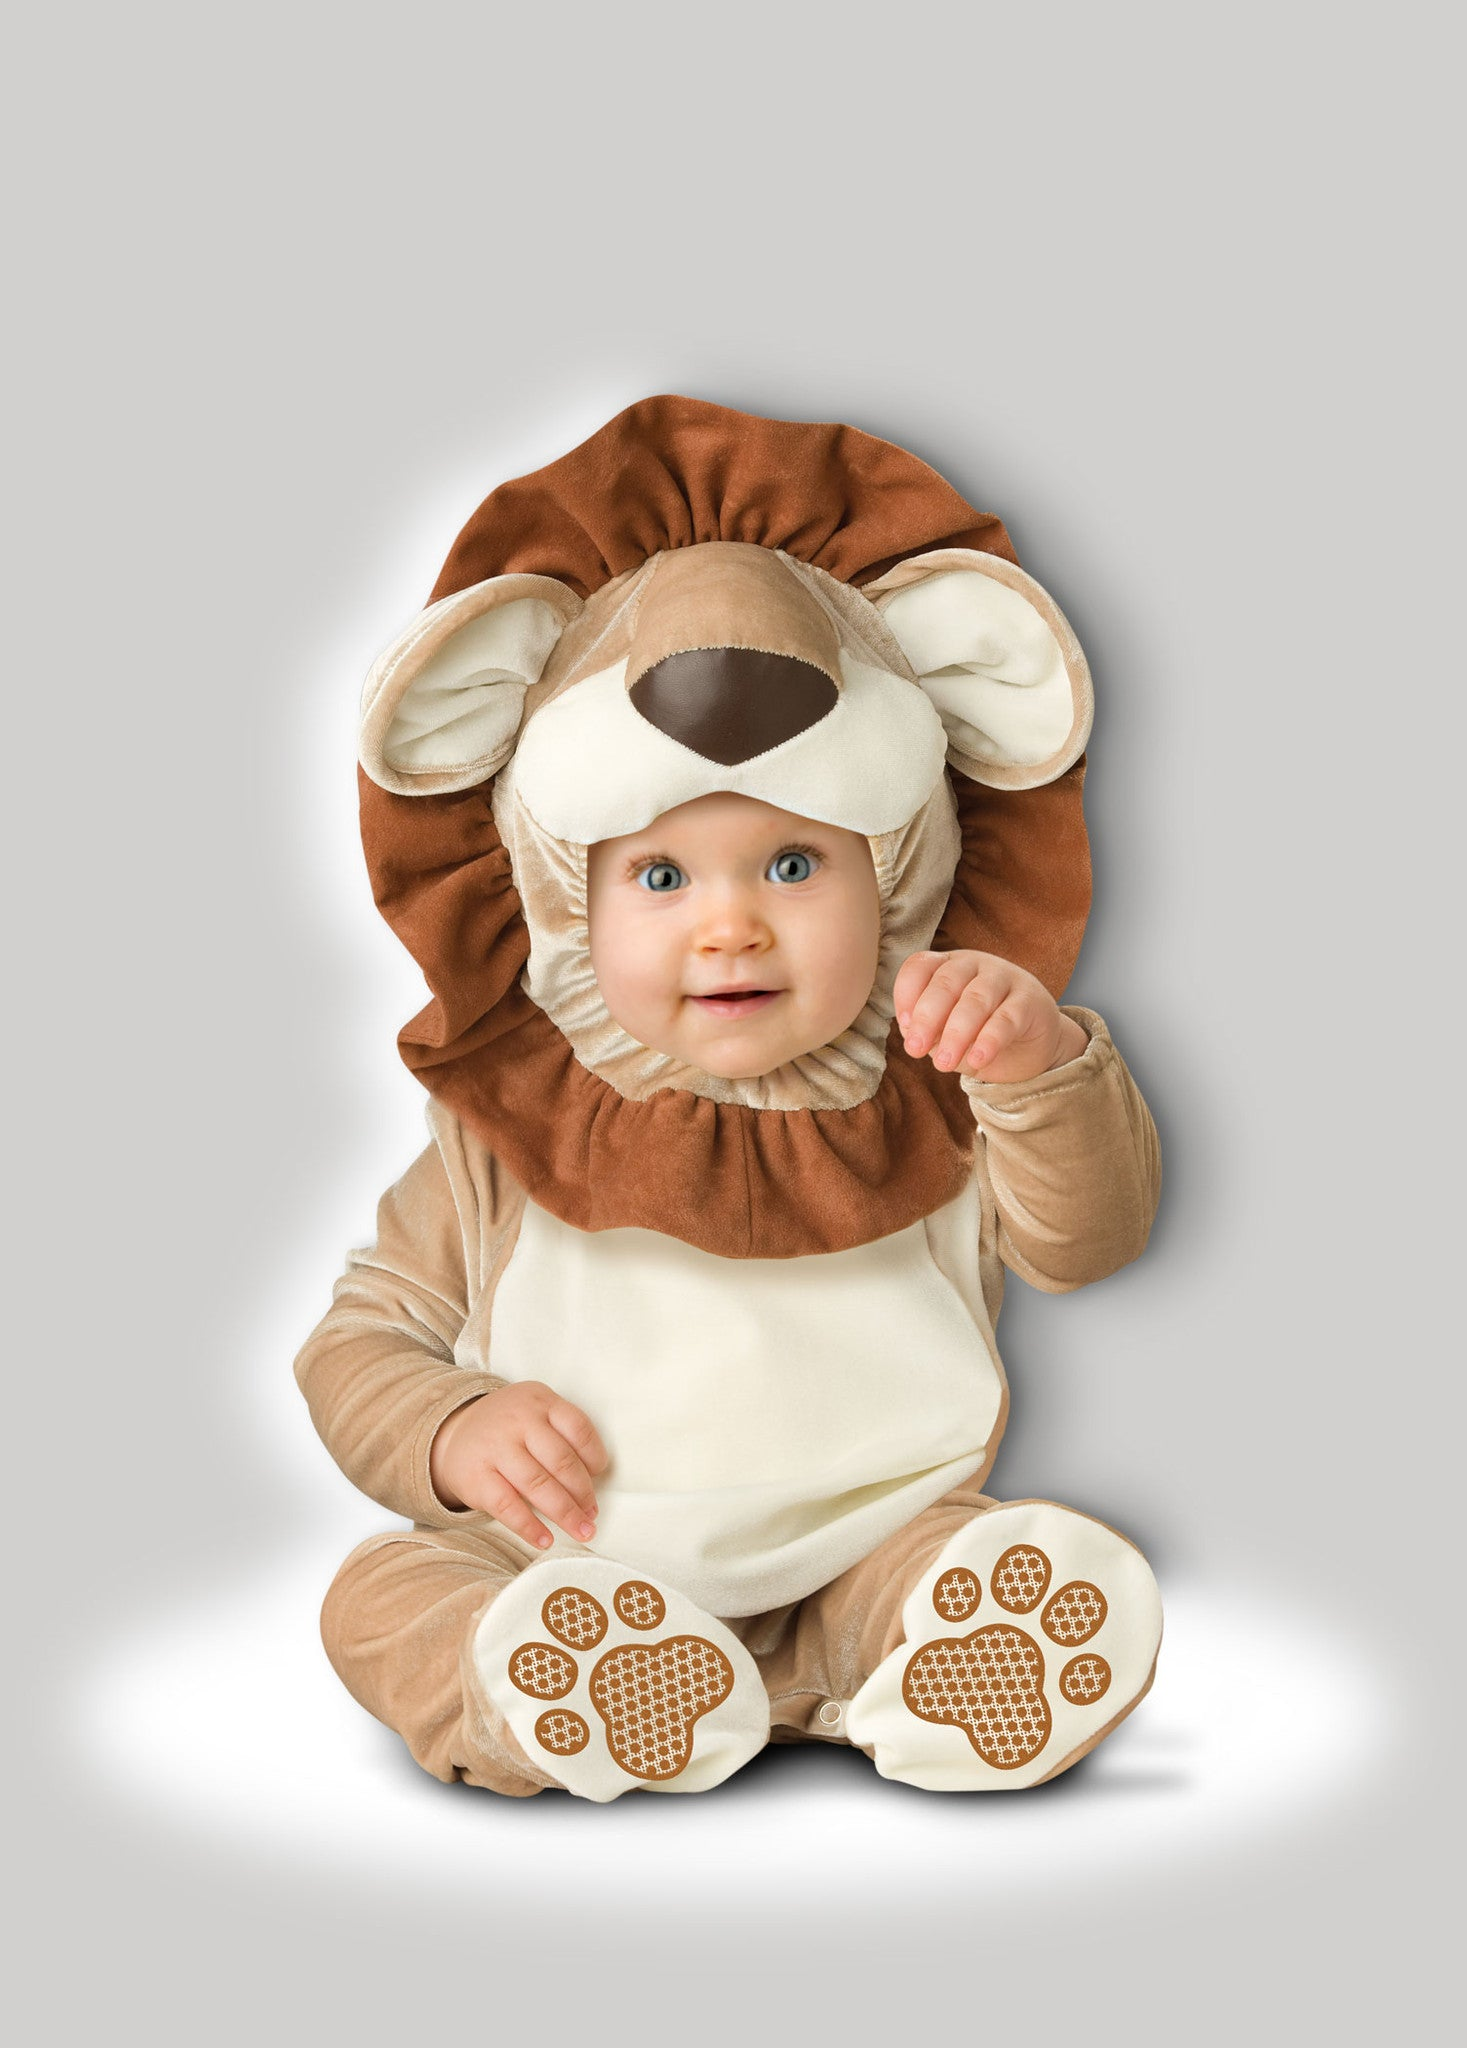 Lovable Lion CK16001  sc 1 st  InCharacter Costumes & Cute Lion Baby Costume u2013 InCharacter Costumes